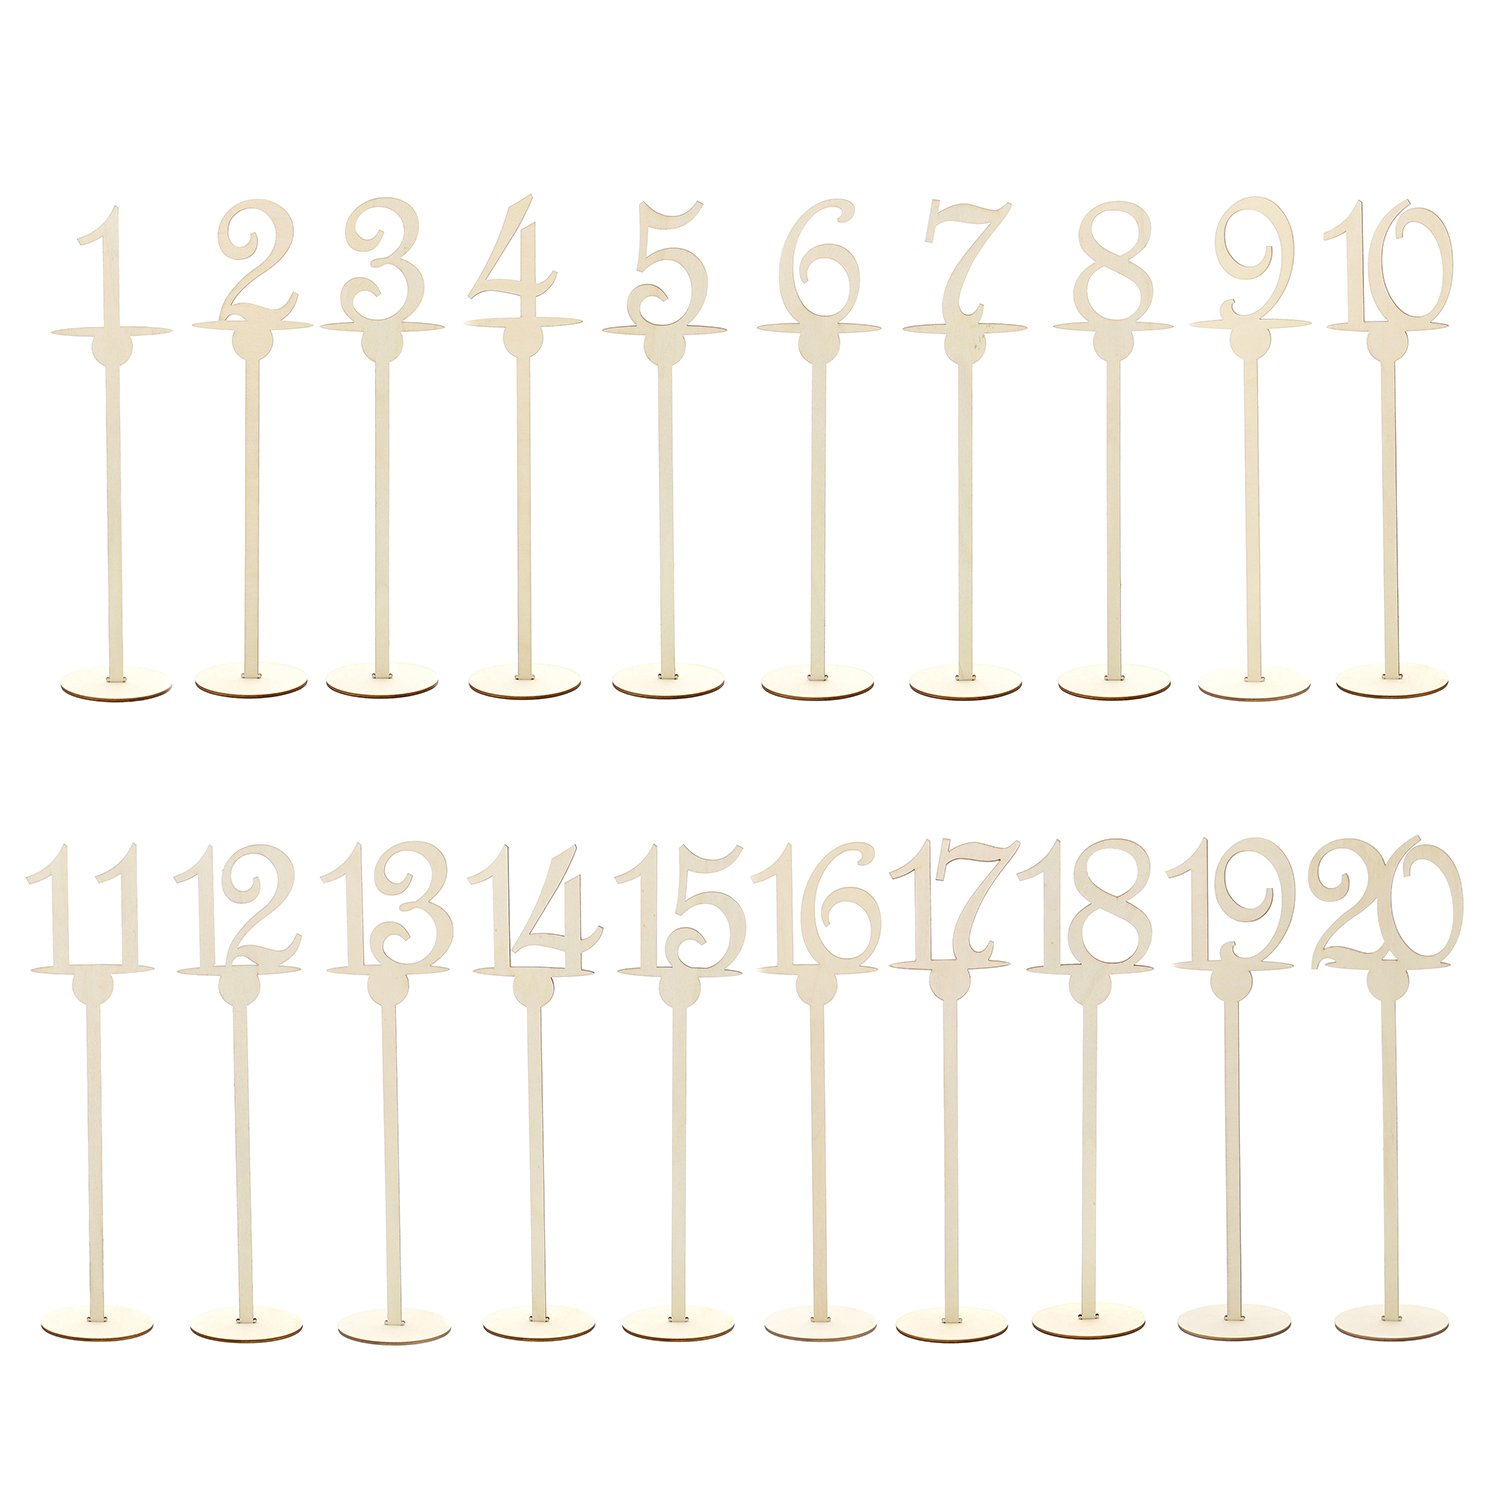 7Penn Table Numbers 1-20 – Wooden Numbered Stands with Underline for Tables at Wedding Receptions, Restaurants, Parties